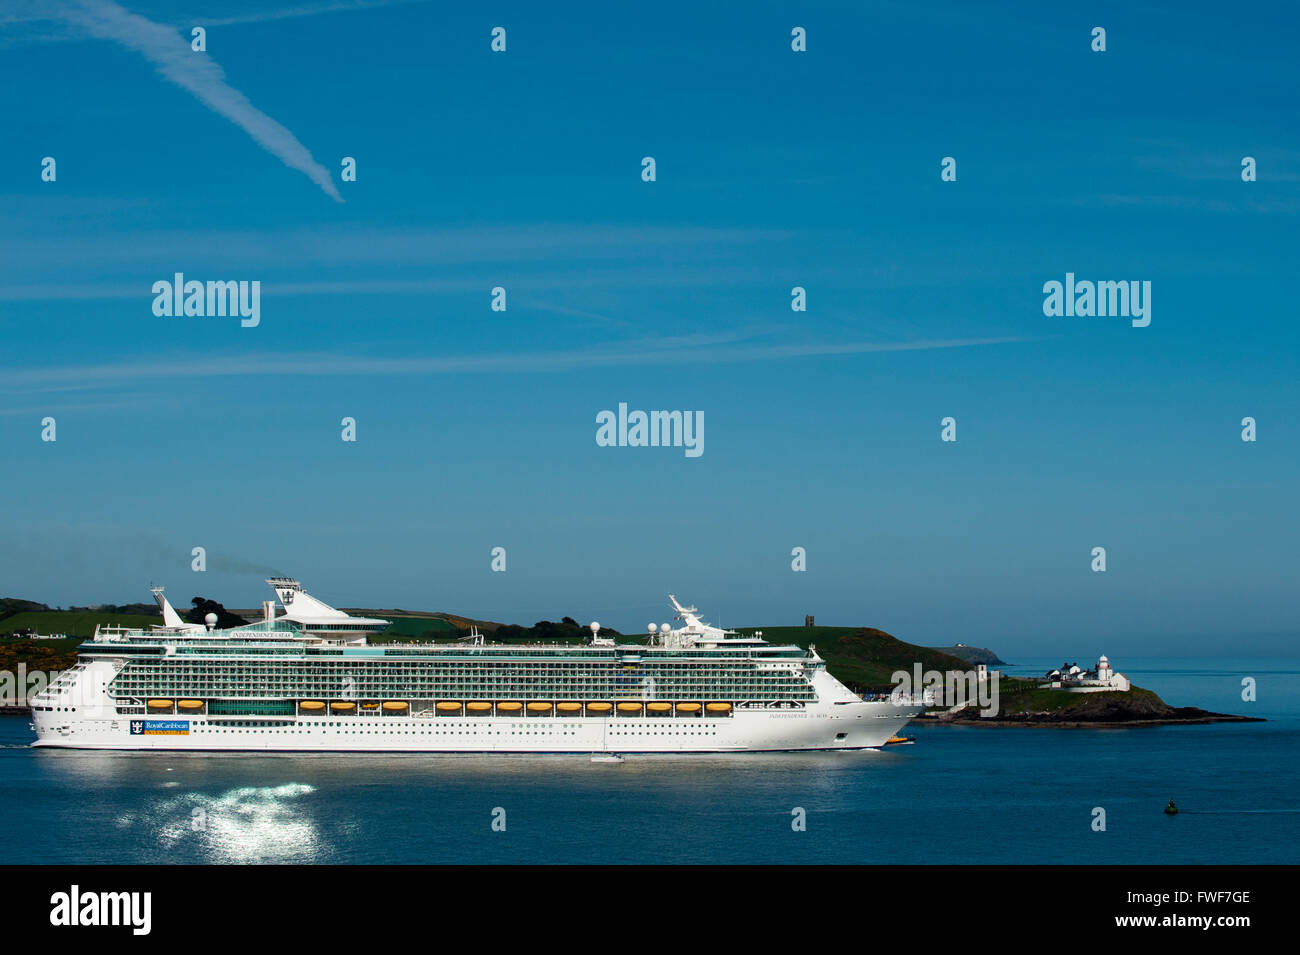 Cruise Liner 'Independence of the Seas' sails past Roches Point, Co. Cork Ireland. - Stock Image